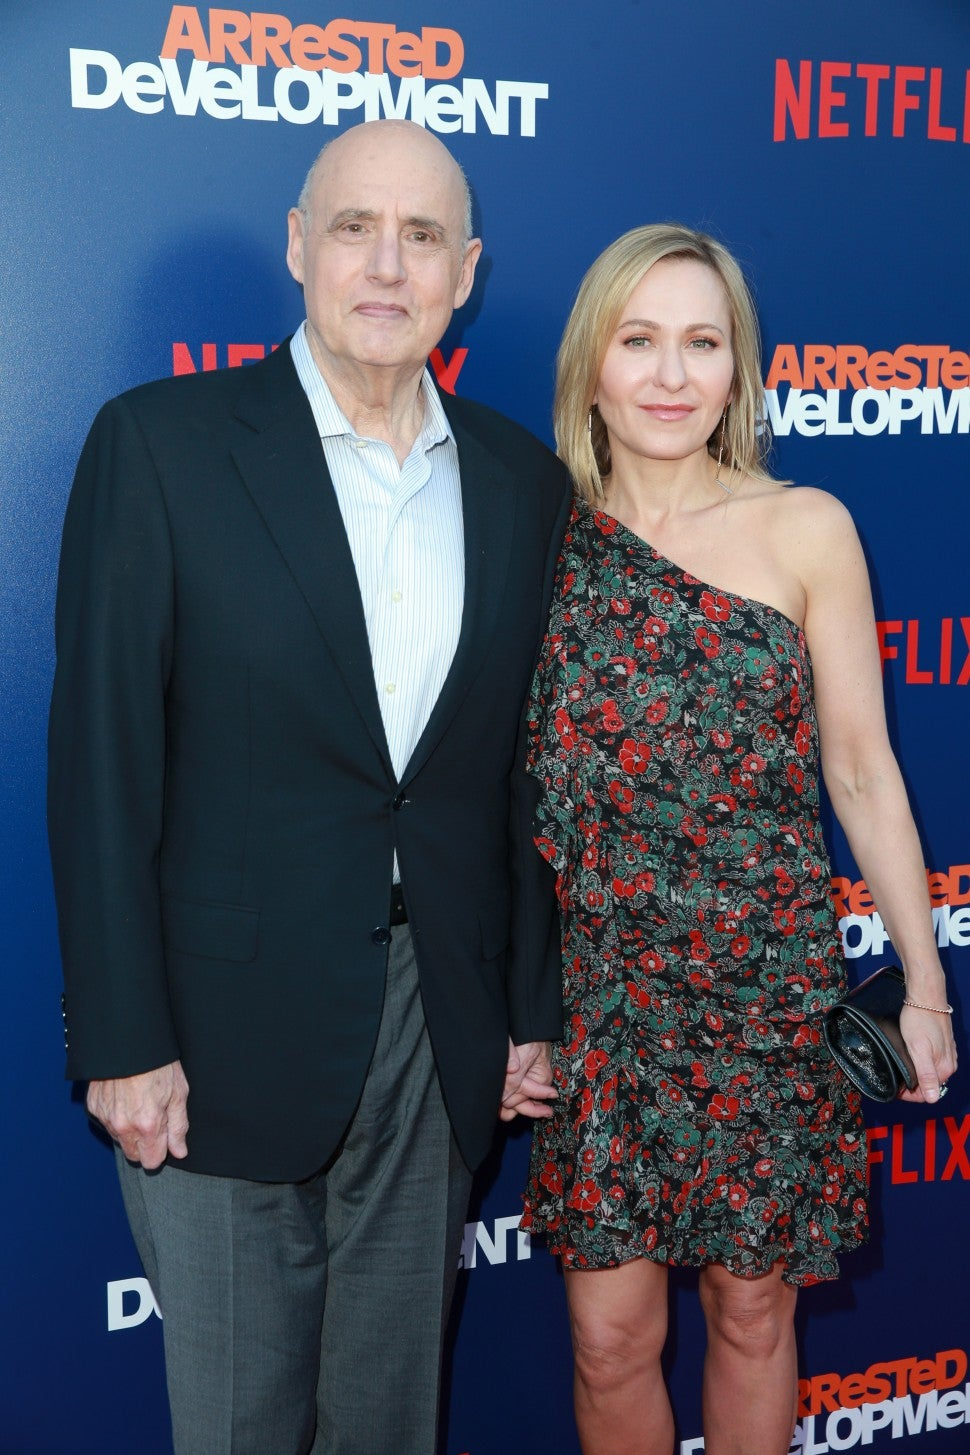 Jeffrey Tambor and wife Arrested Development Season 5 premiere